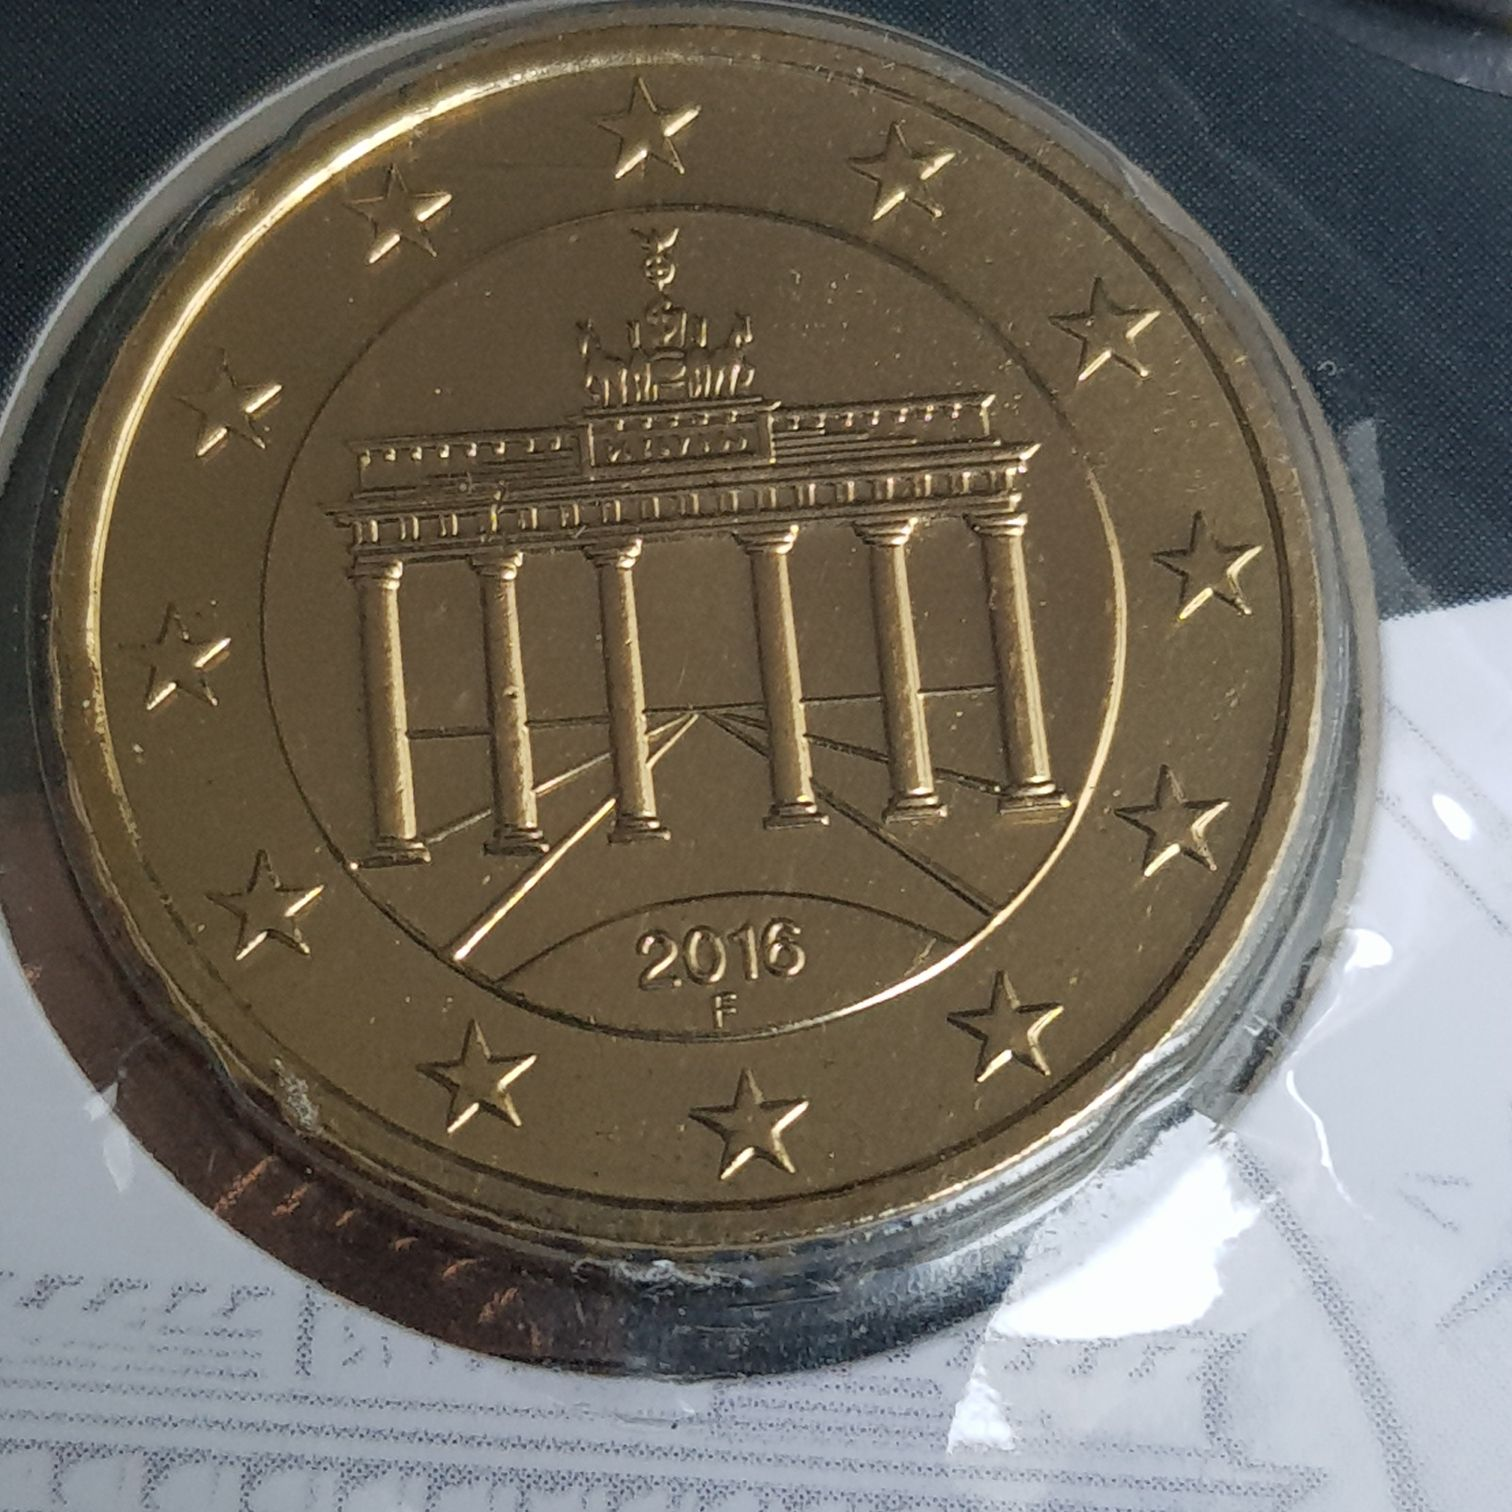 .5 Centavos De Euro Coin - $.50 (2016) back image (back cover, second image)